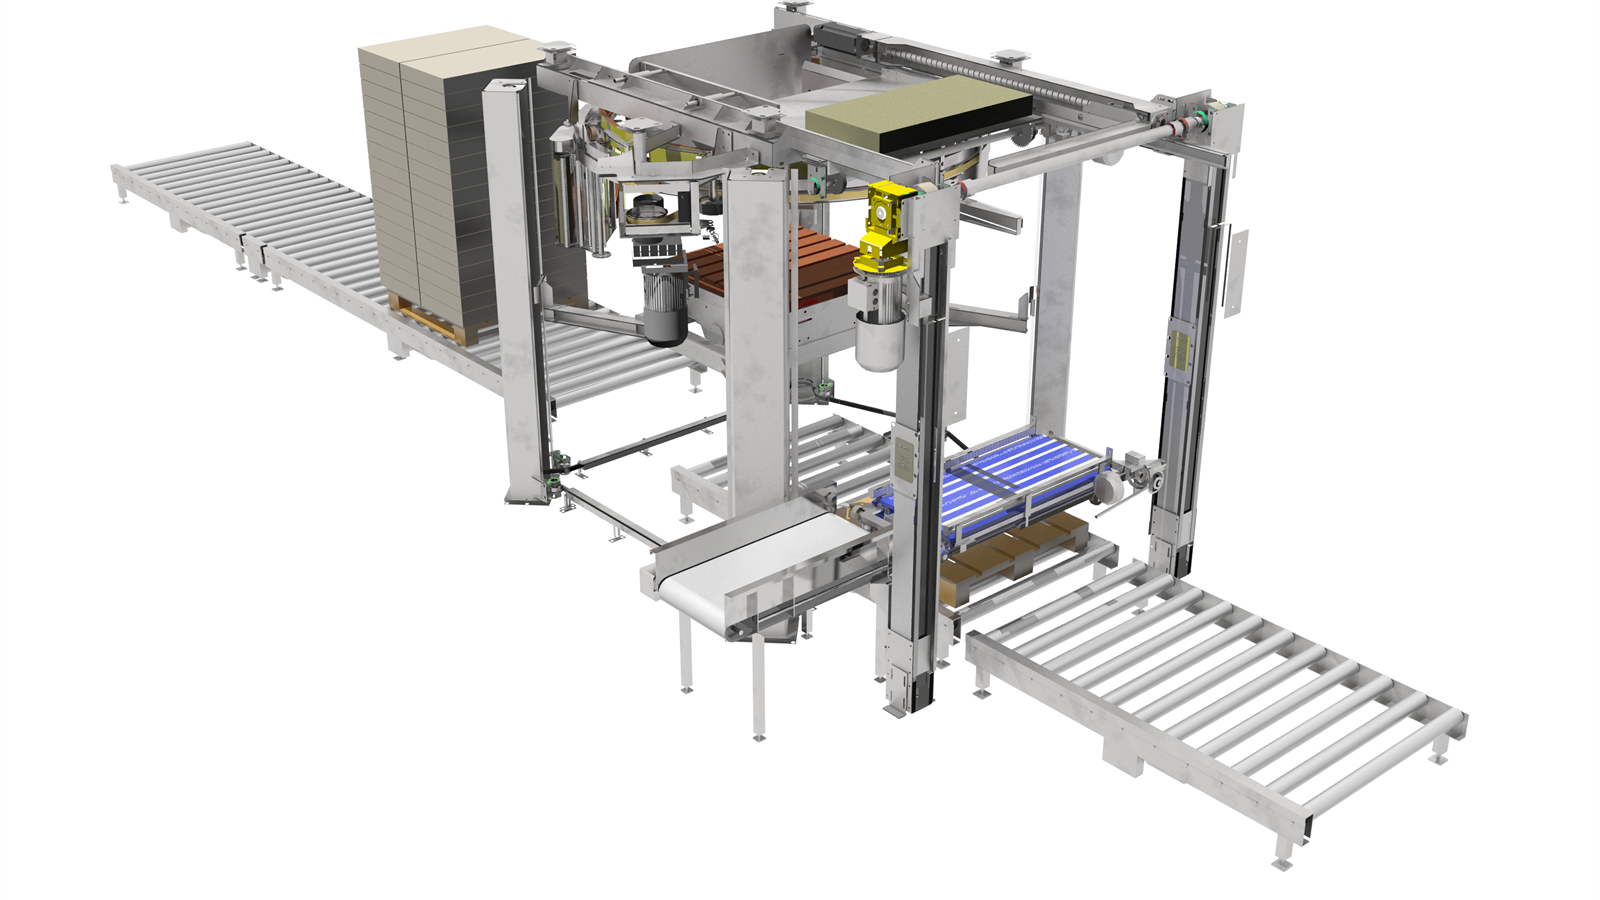 Onboard compact palletizer